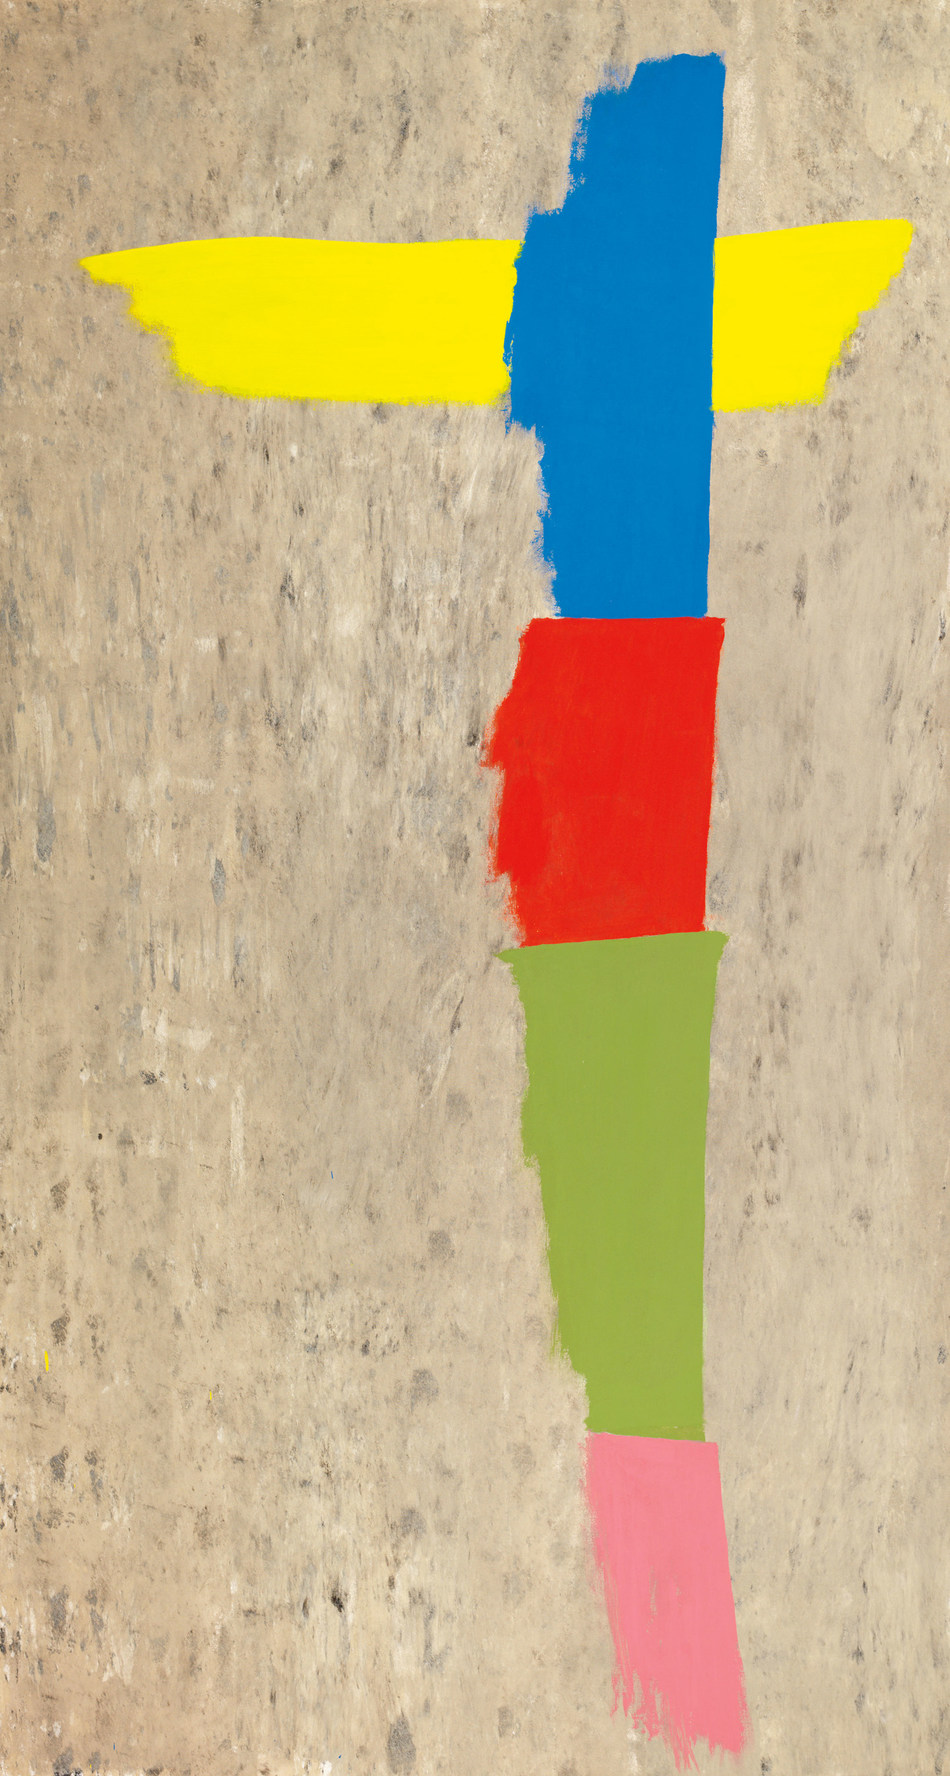 """Three works by Jack Bush anchor Heffel's Post-War & Contemporary Art offering. """"Winged Totem"""" is sure to resonate with international collectors (est. $250,000 - 350,000) (CNW Group/Heffel Fine Art Auction House)"""